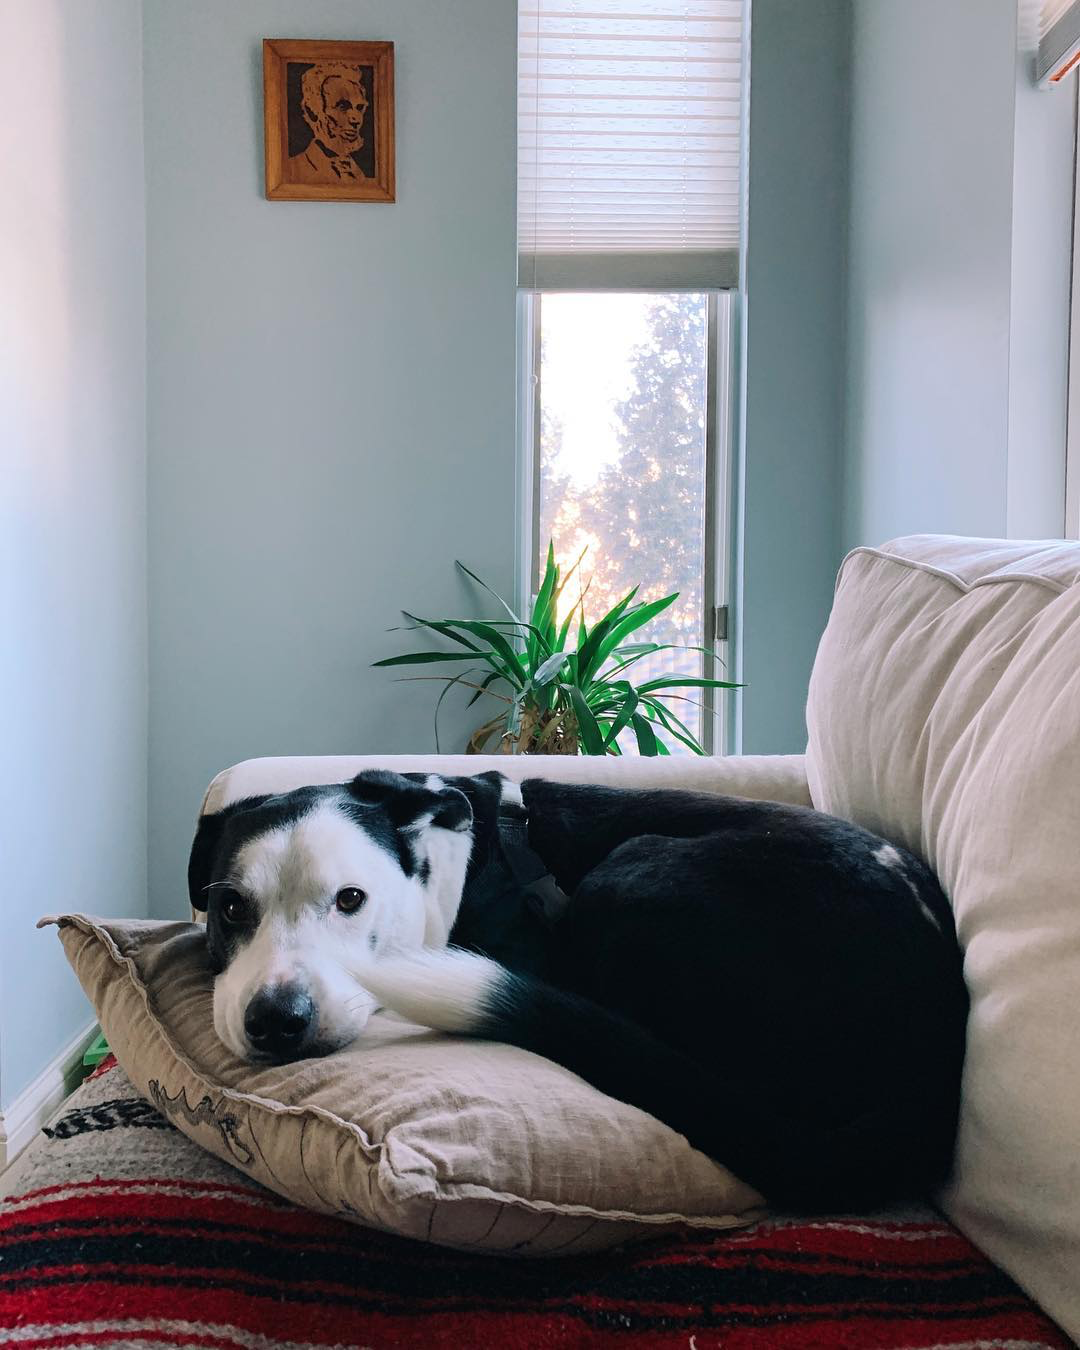 Black and white dog on couch.